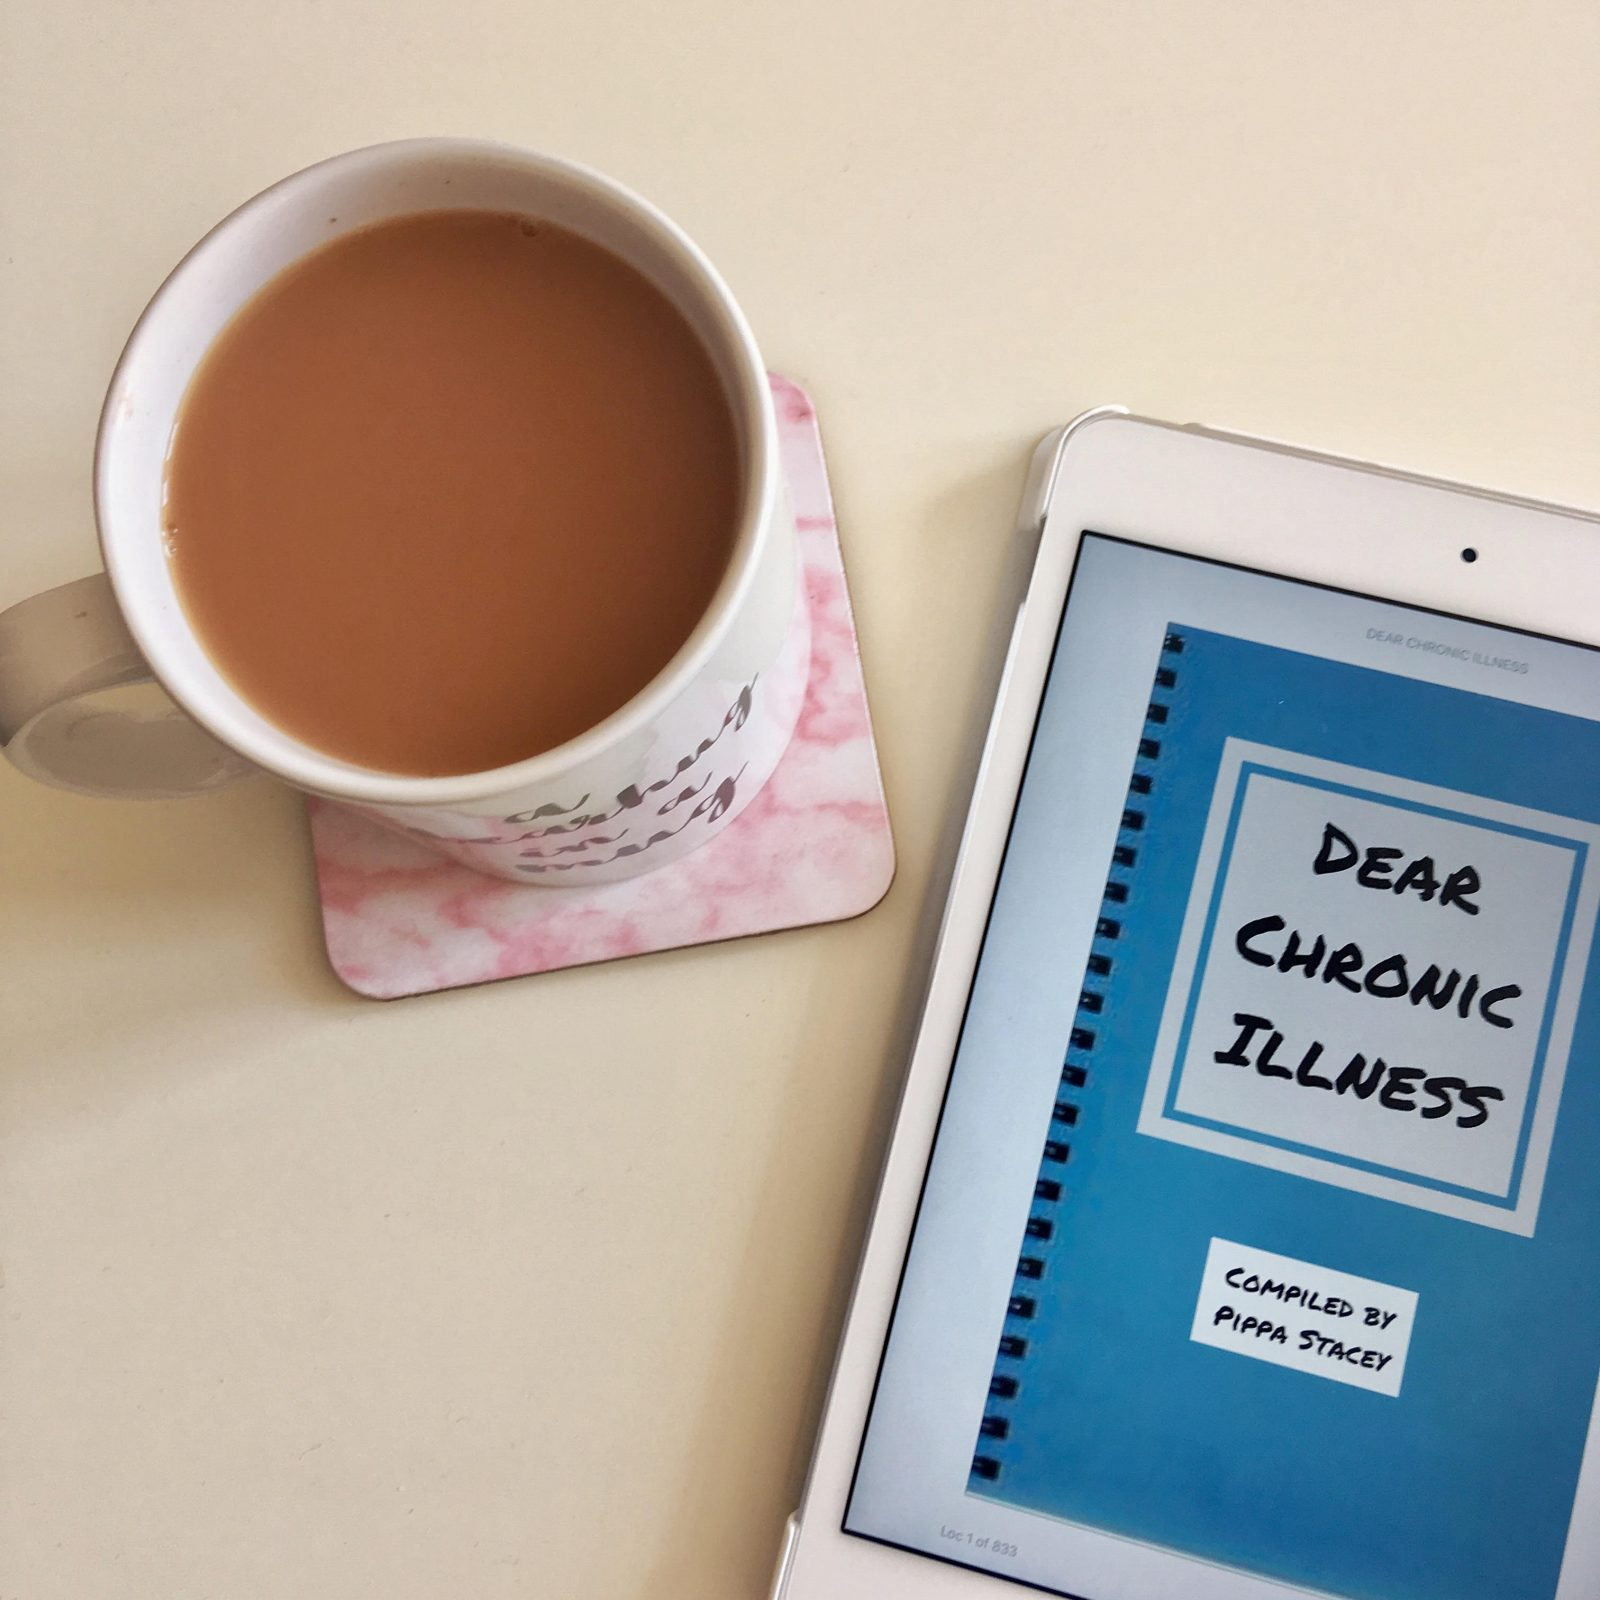 flatlay of cup of tea on pink coaster, next to the 'dear chronic illness' book cover displayed on kindle